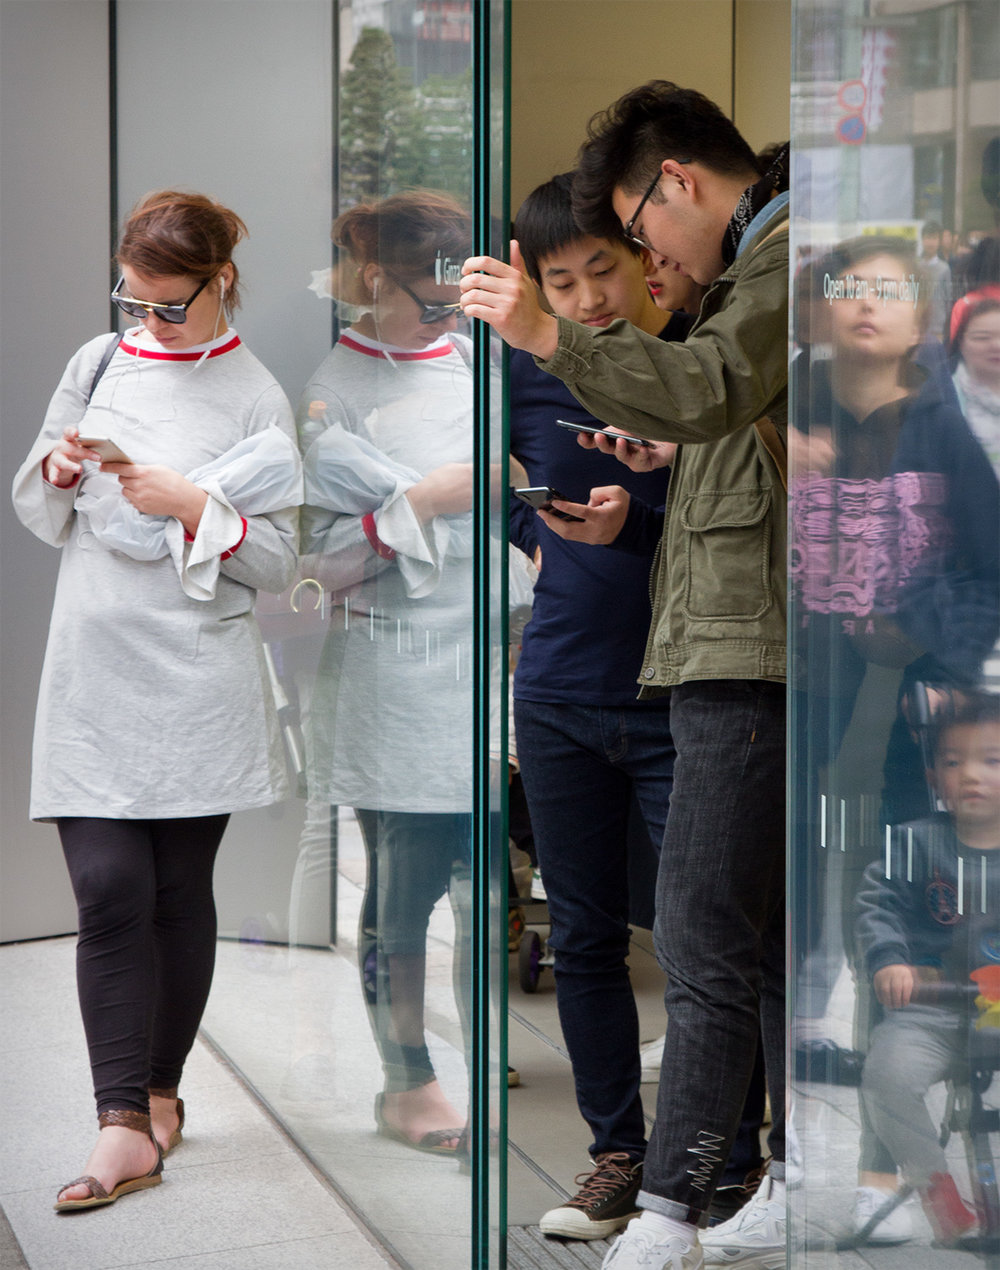 Texting Reflected